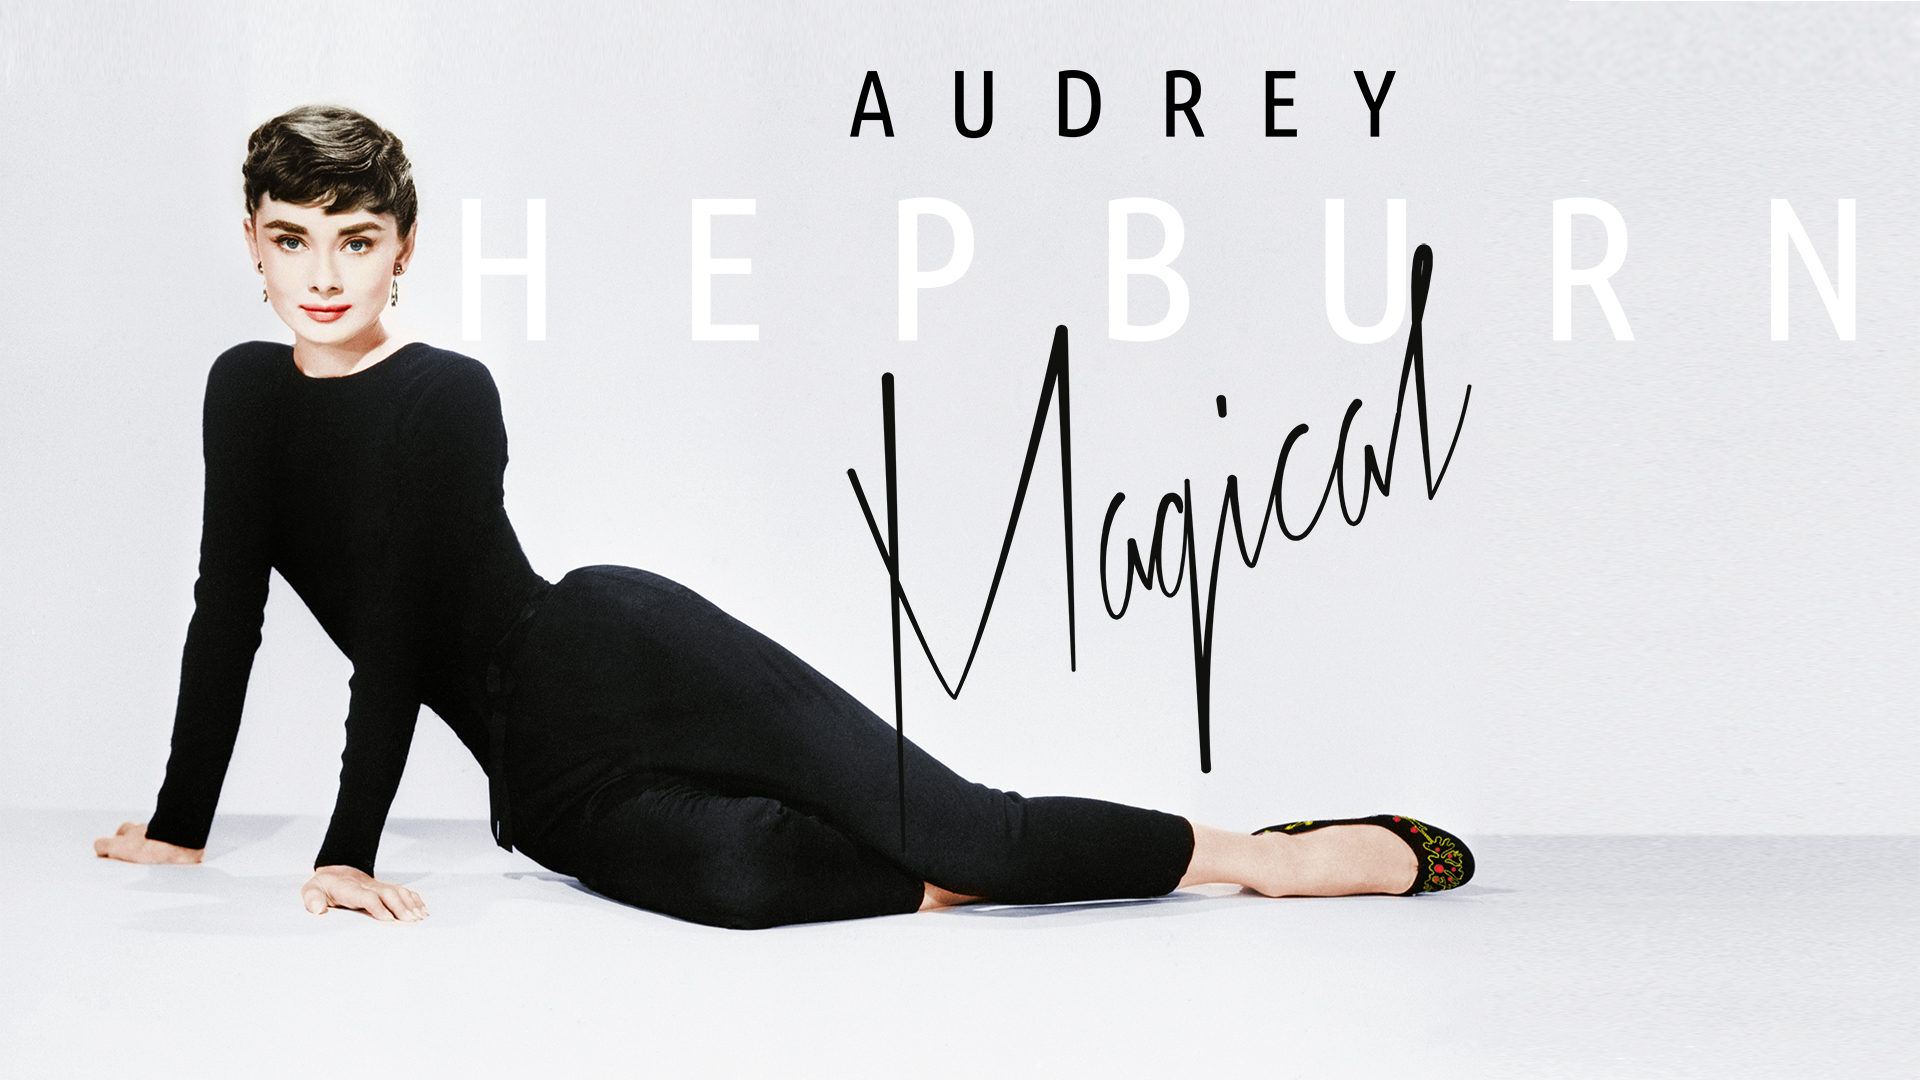 Audrey Hepburn Magical